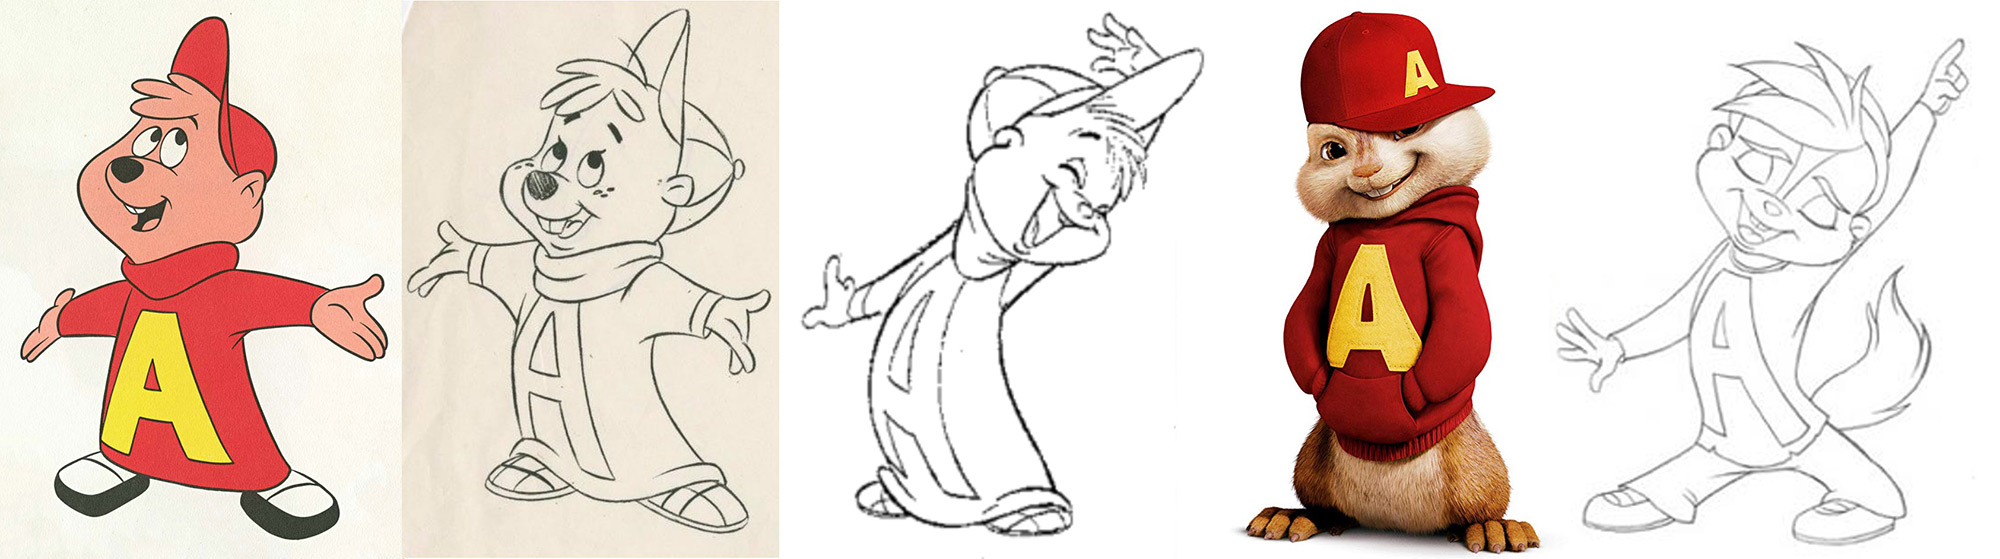 Depending on your point of view, Alvin's design has either evolved or devolved through the years.